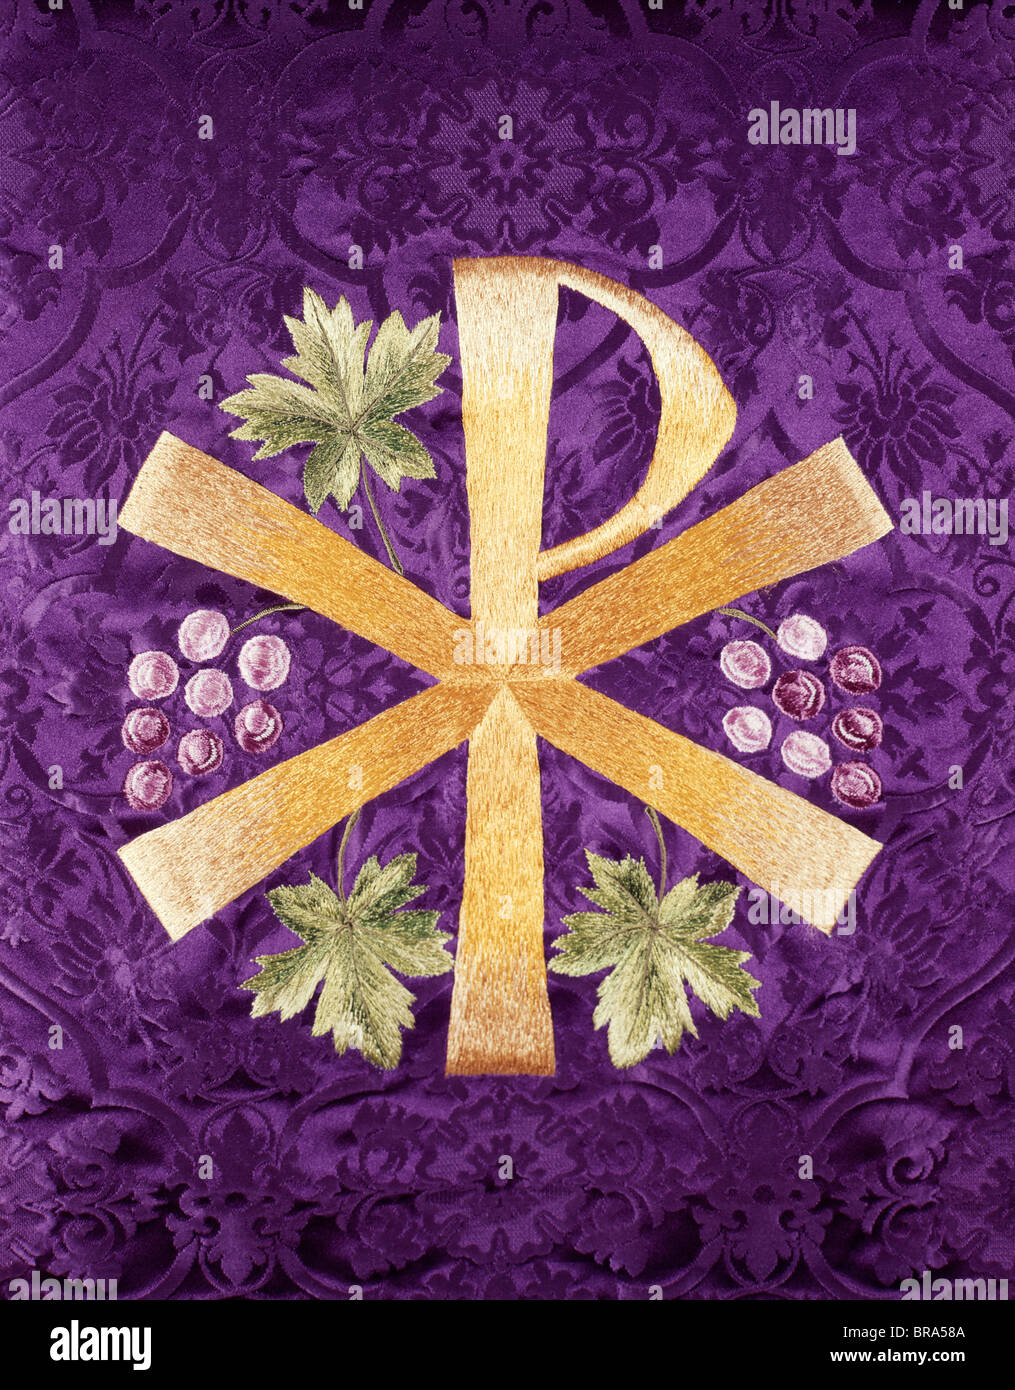 constantines cross chi rho embroidered in gold on purple cloth